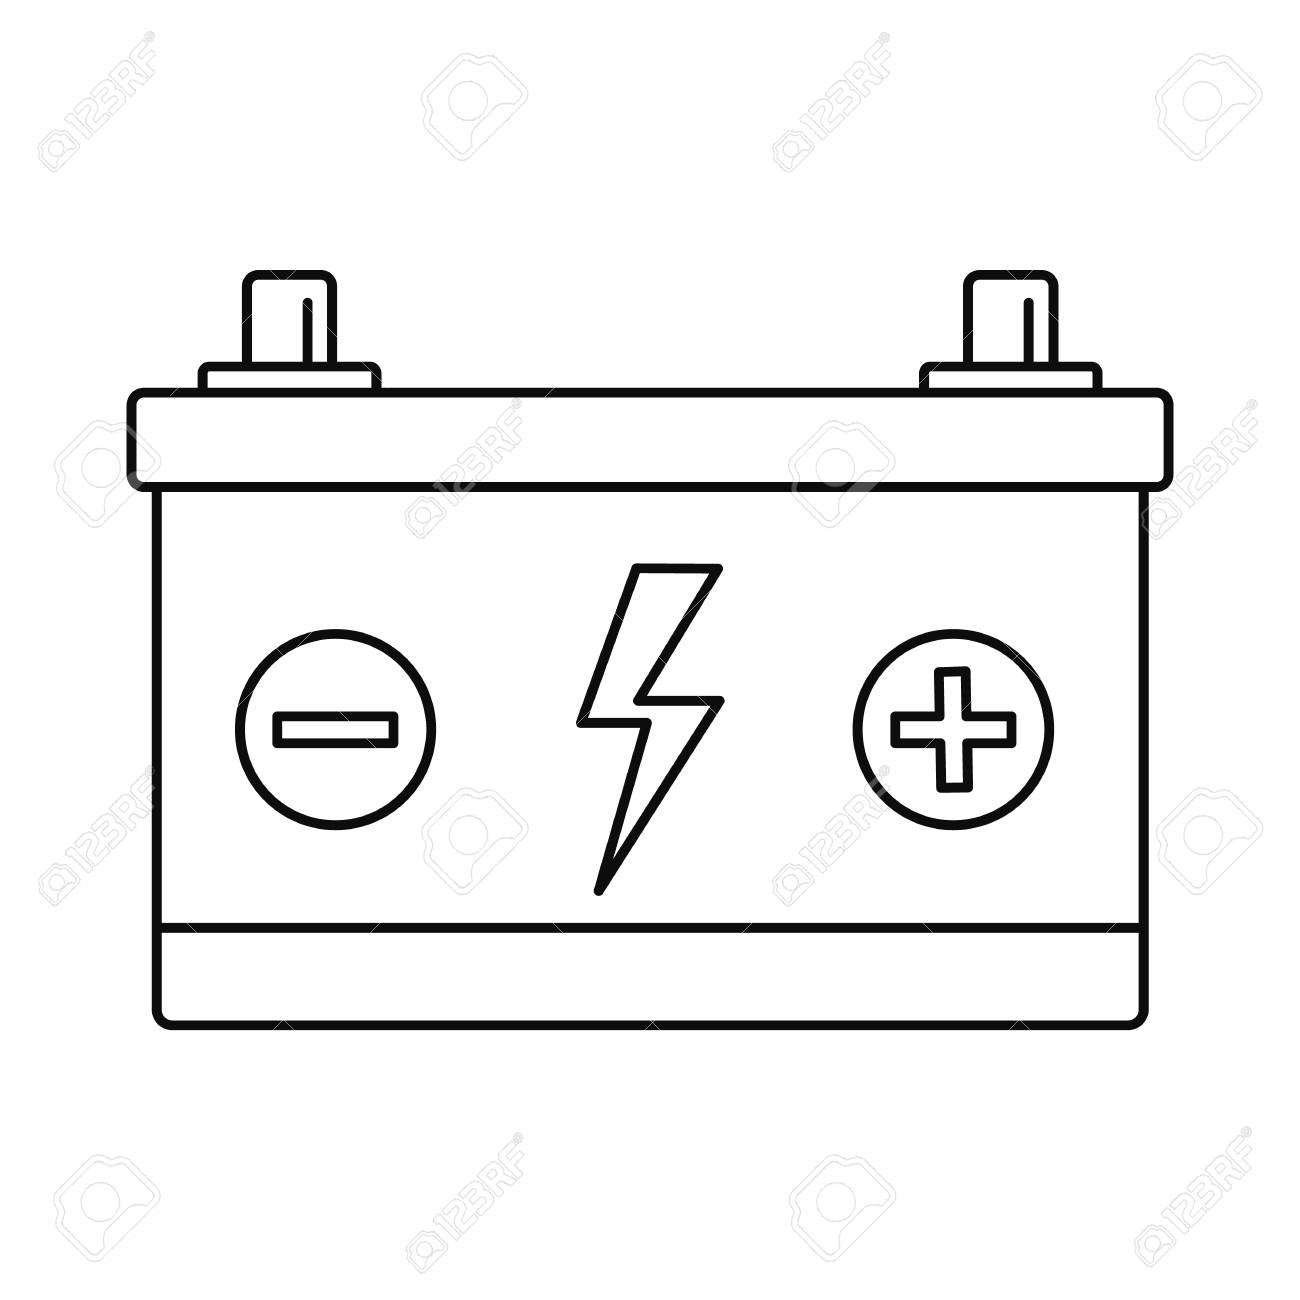 hight resolution of car battery icon outline style stock vector 109414252